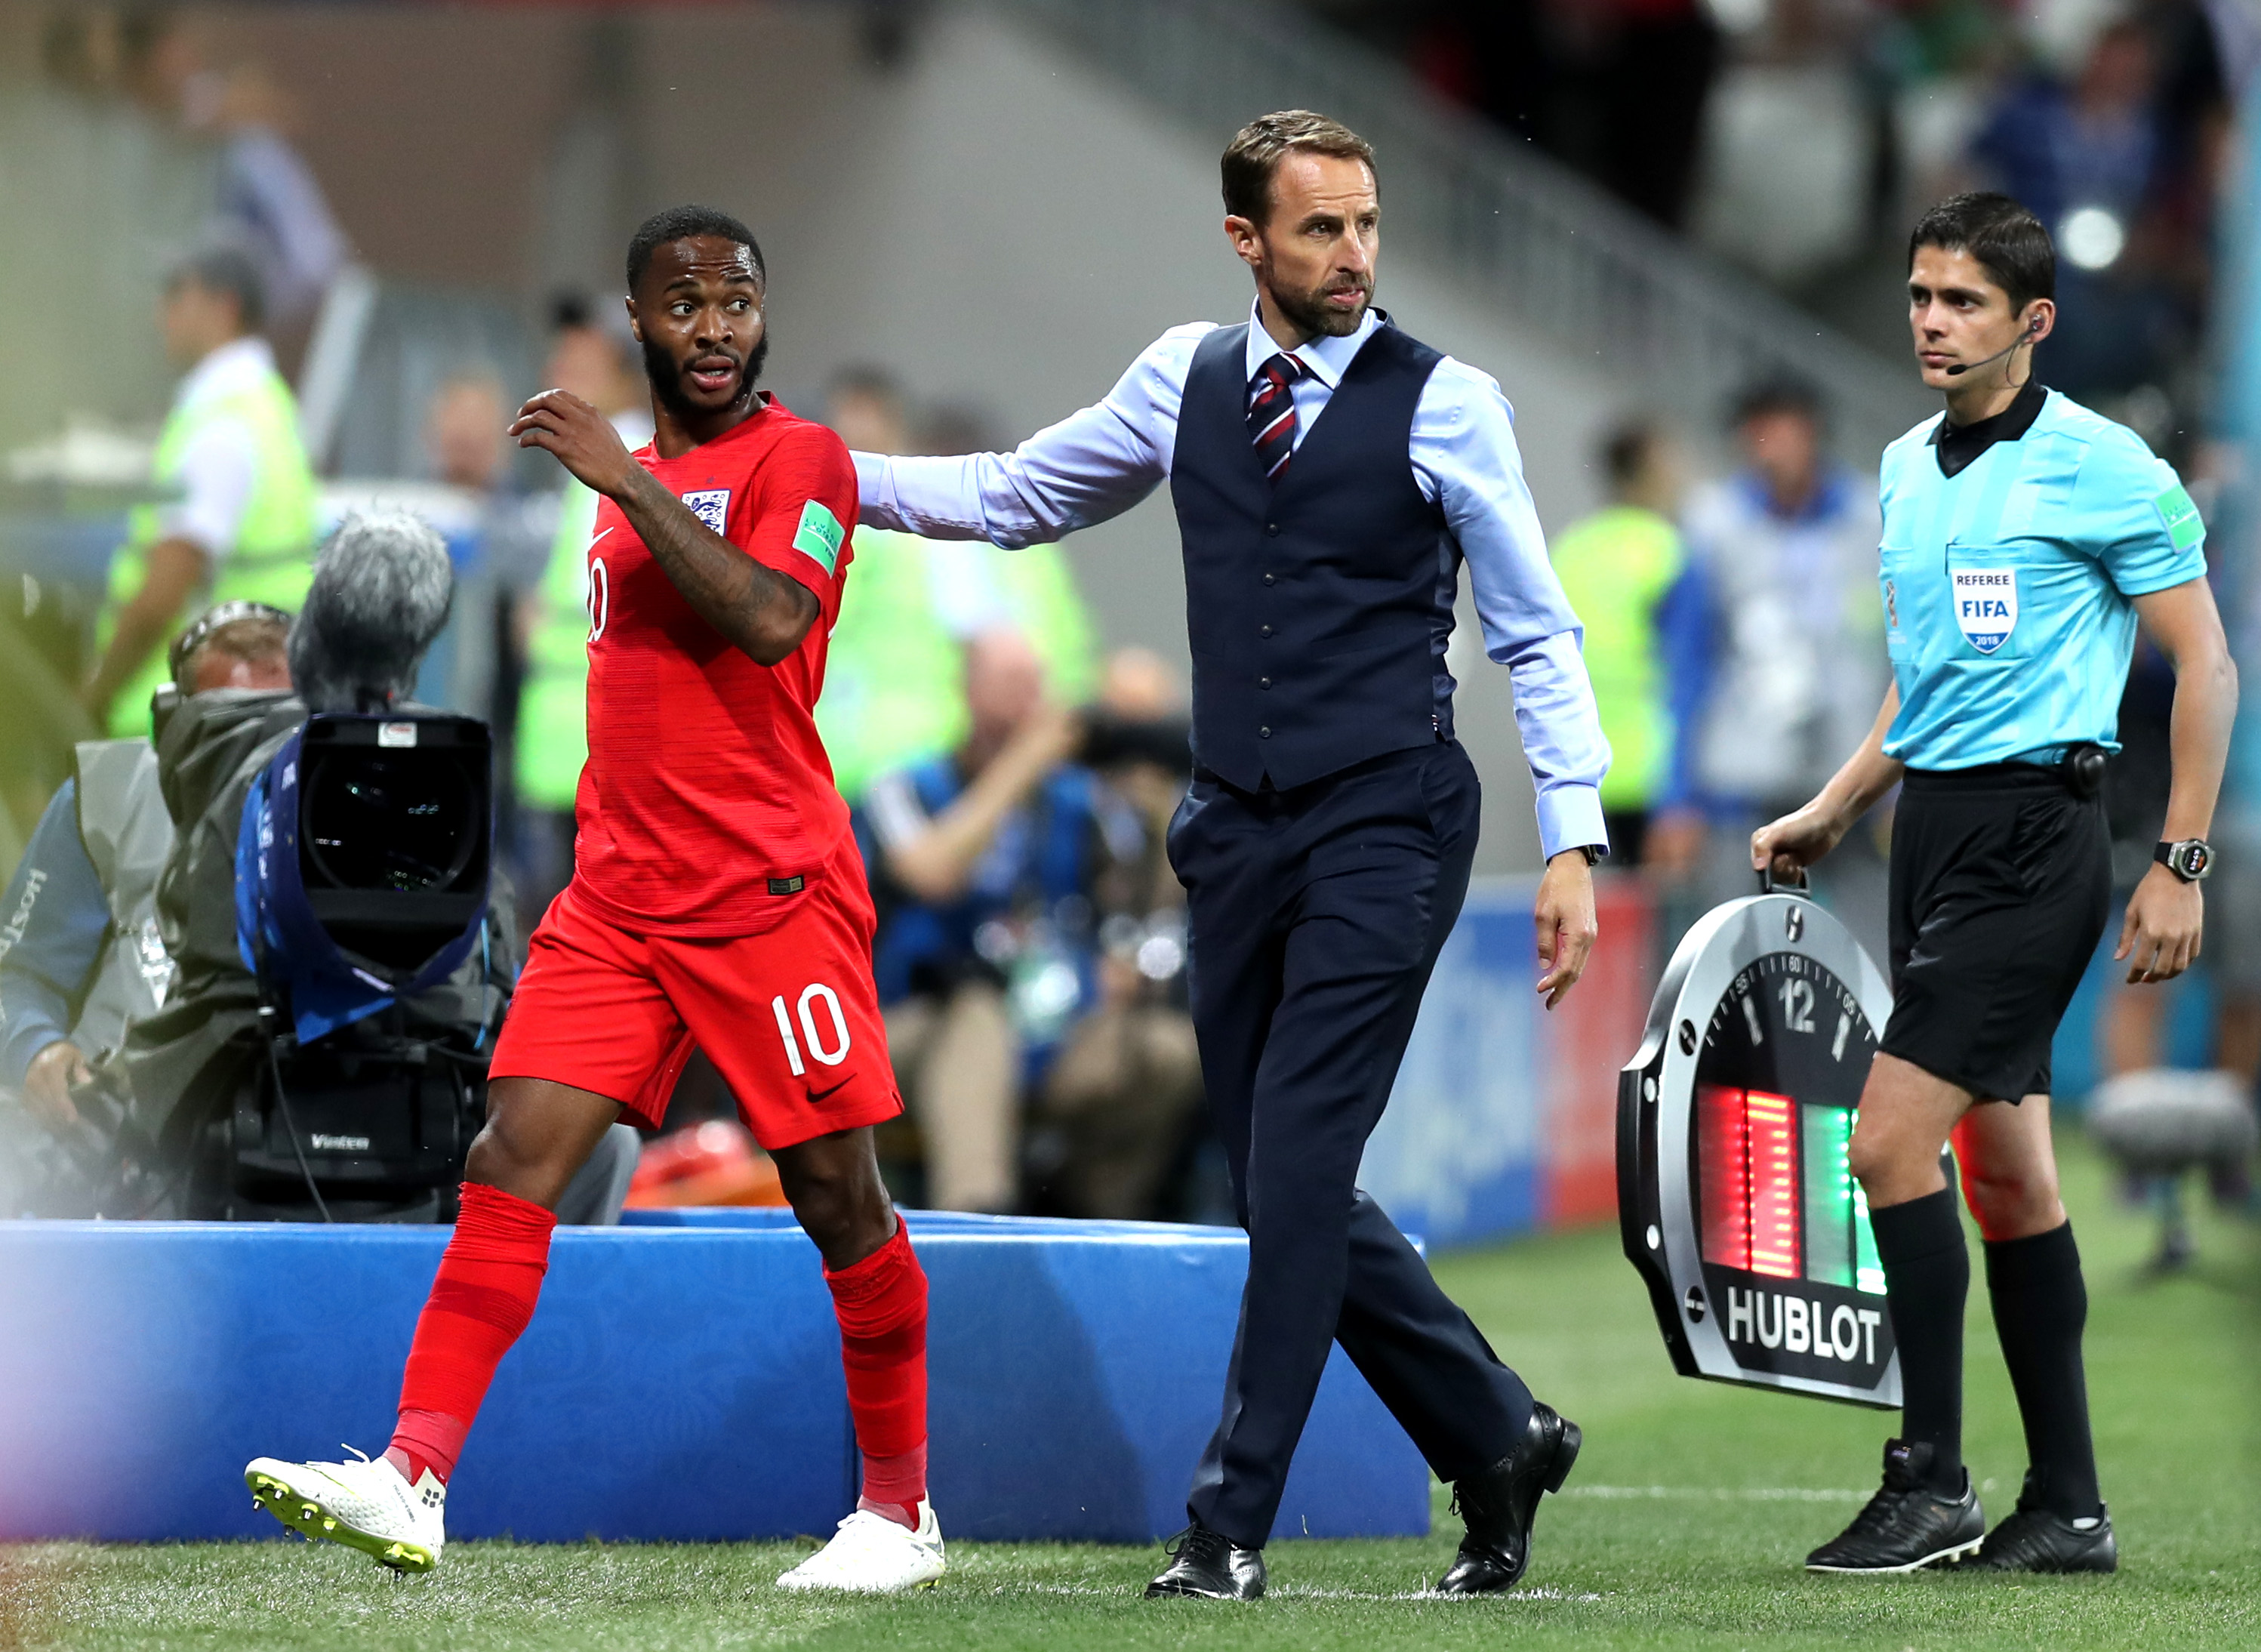 Better me than the players, says injured England boss Southgate